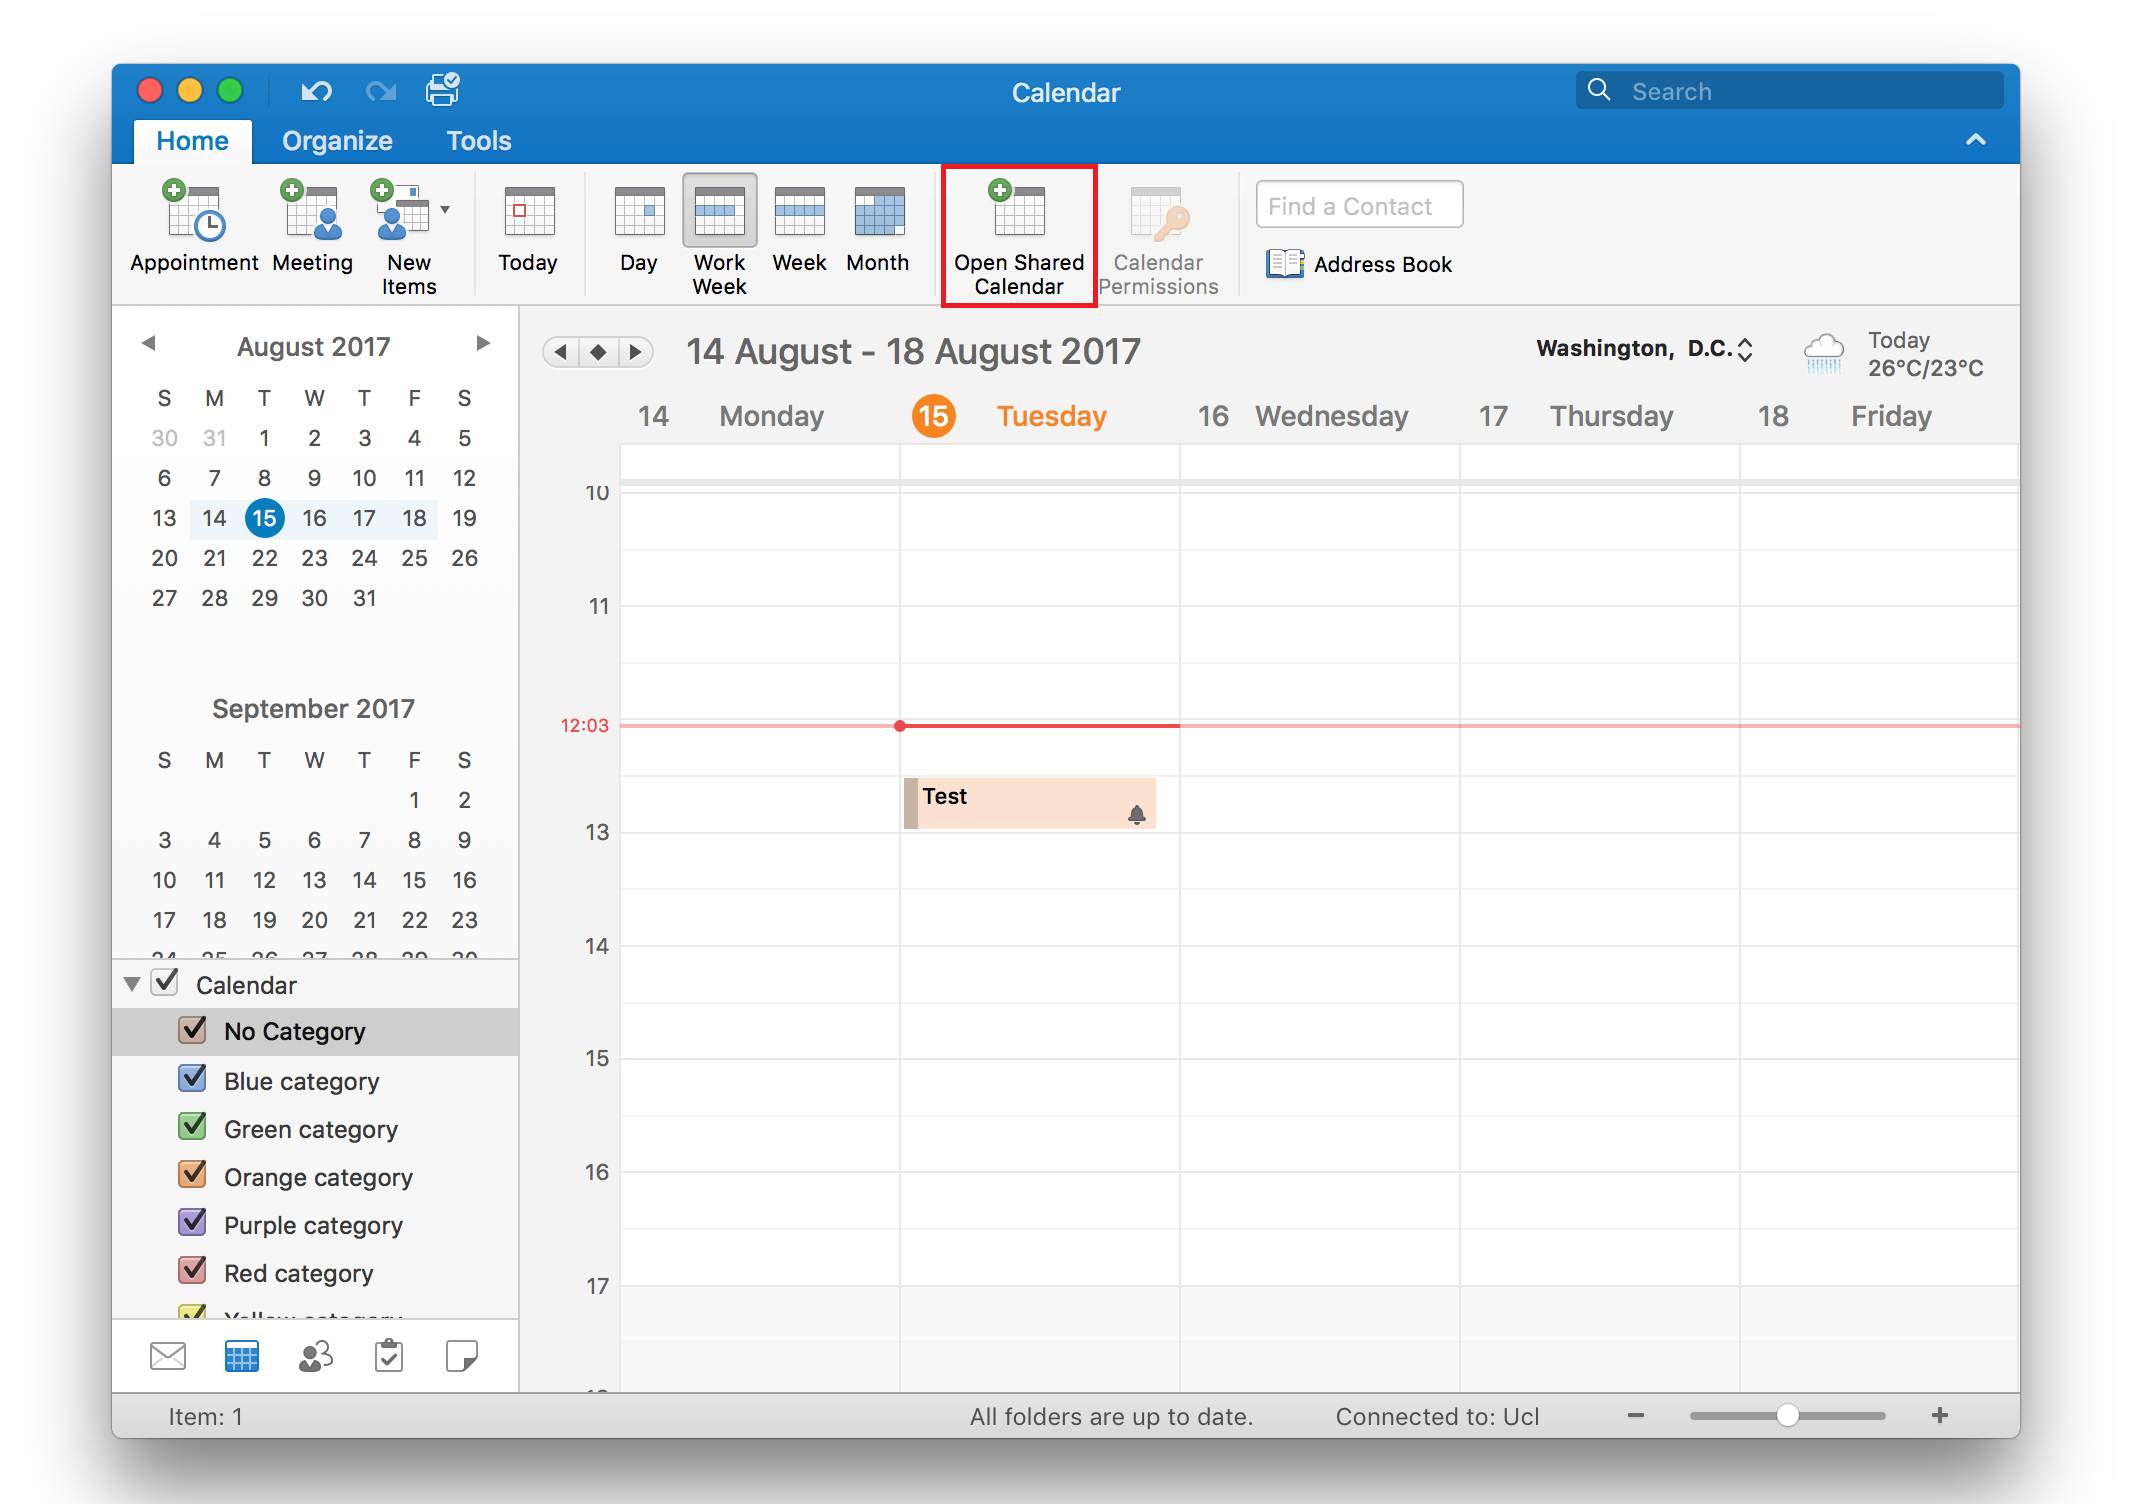 View Another Person's Calendar In Outlook 2016 For Mac intended for View Calendar In Outlook 2016